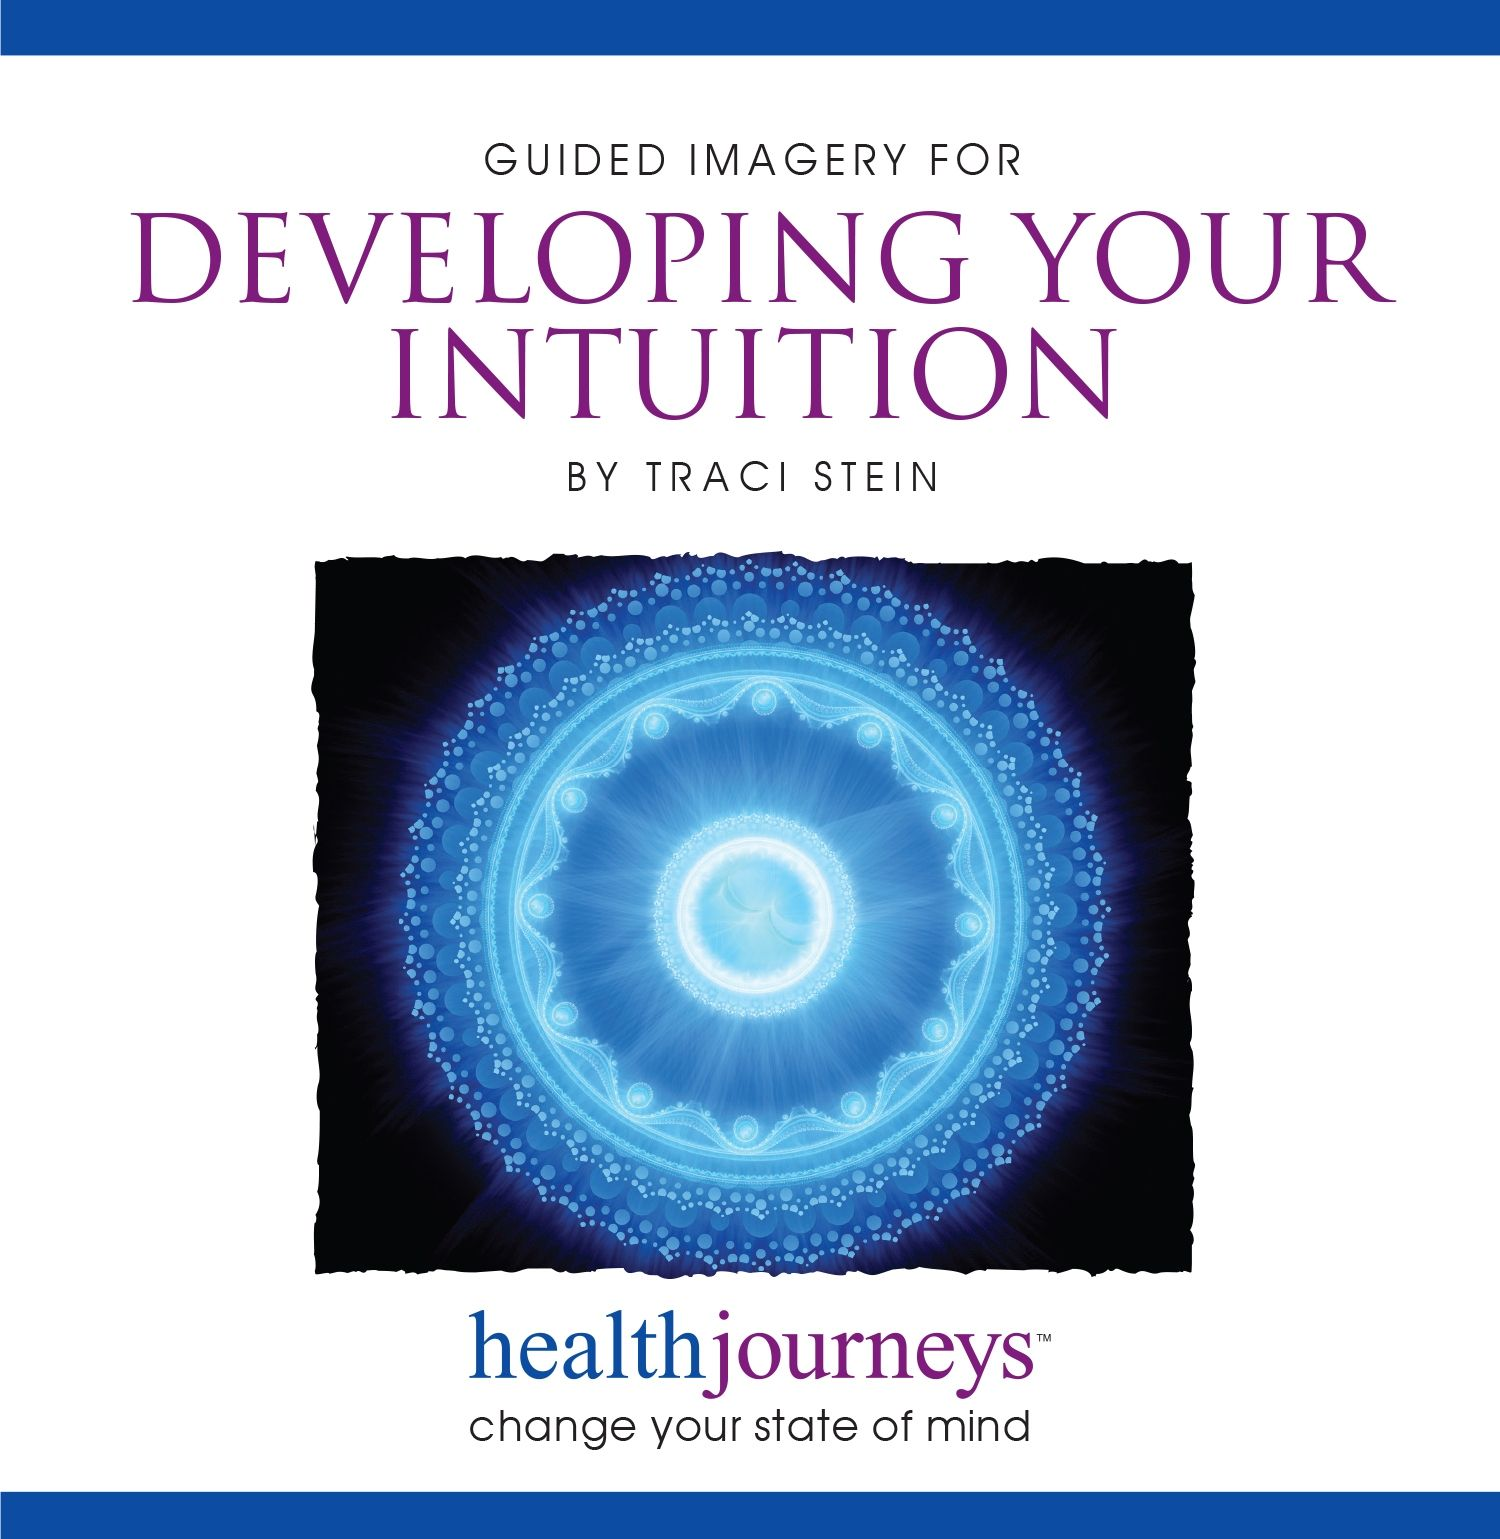 It's Here! Traci Stein's New Meditations for Developing Intuition